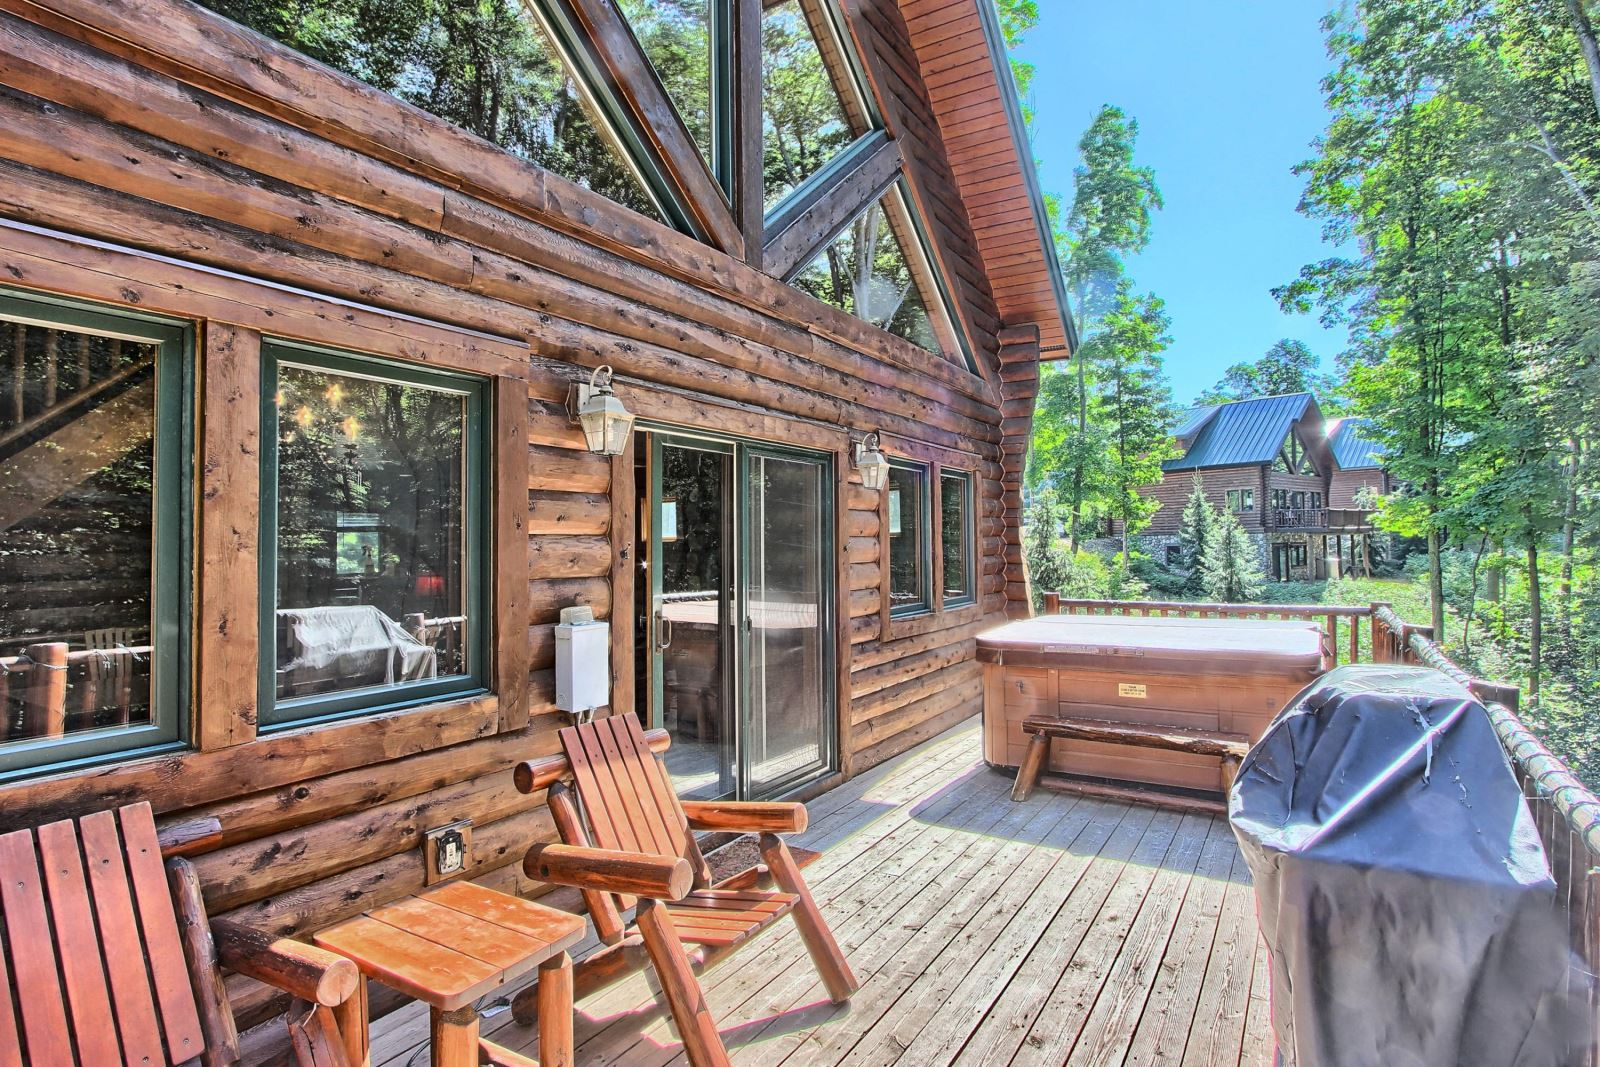 Lakefront Cabin Rentals in Michigan | Upnorth Michigan | Northern Michigan Cabin Rentals